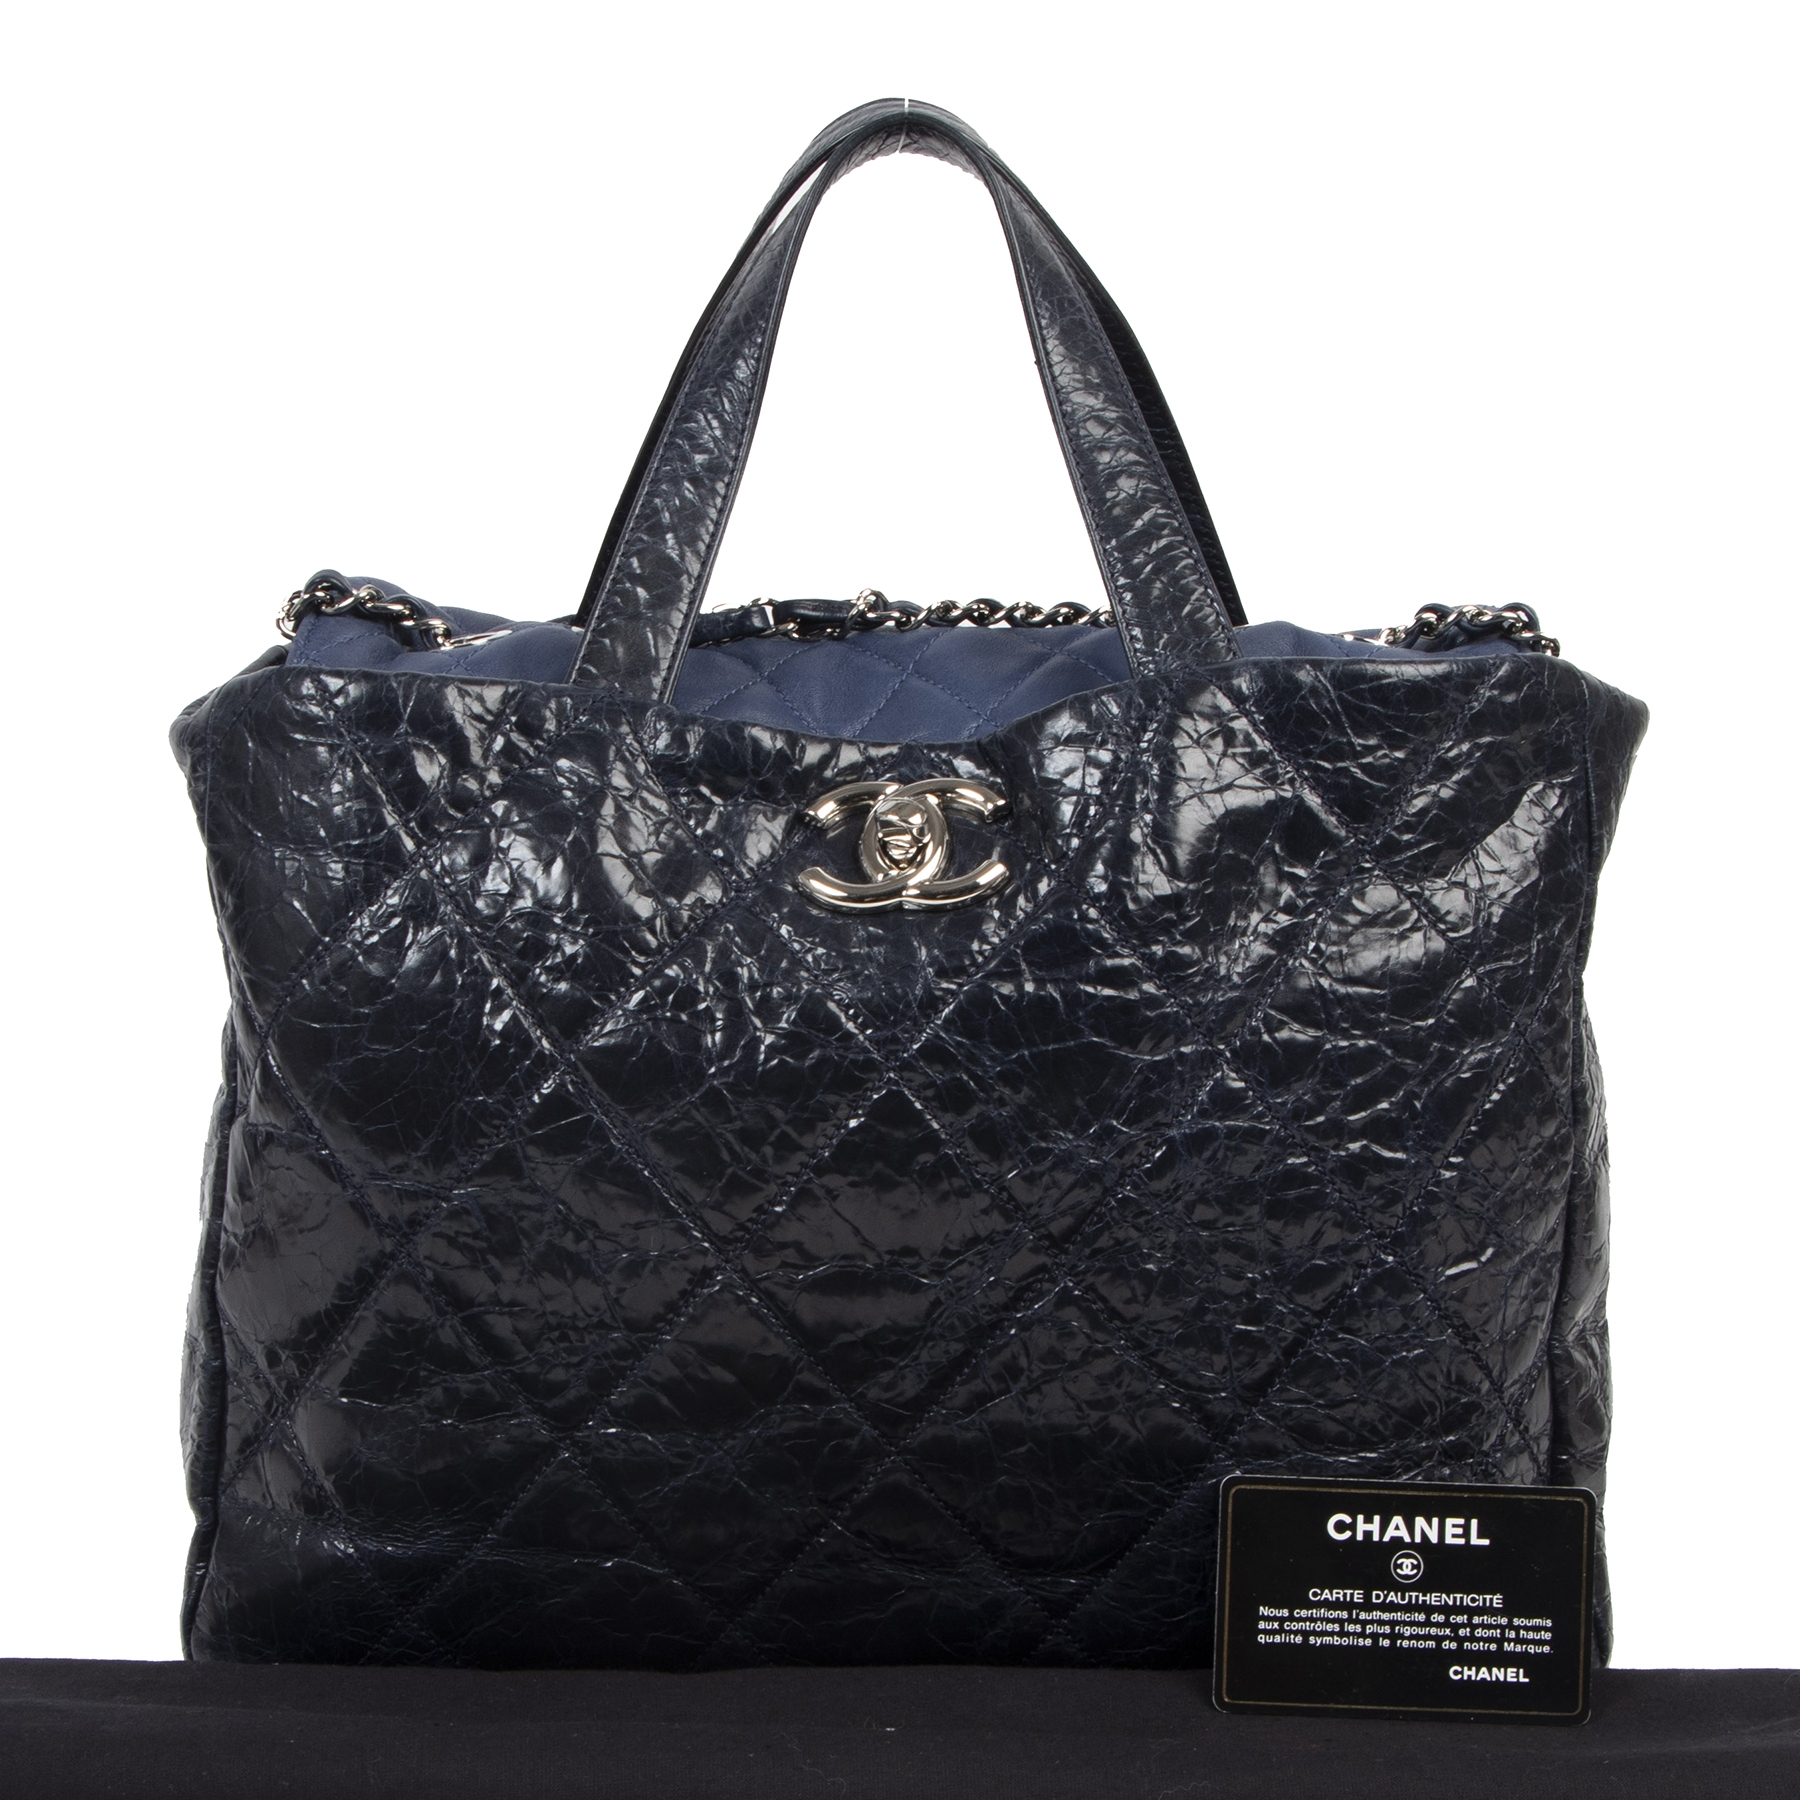 shop online at the best price Chanel Blue Distressed Leather Tote Bag